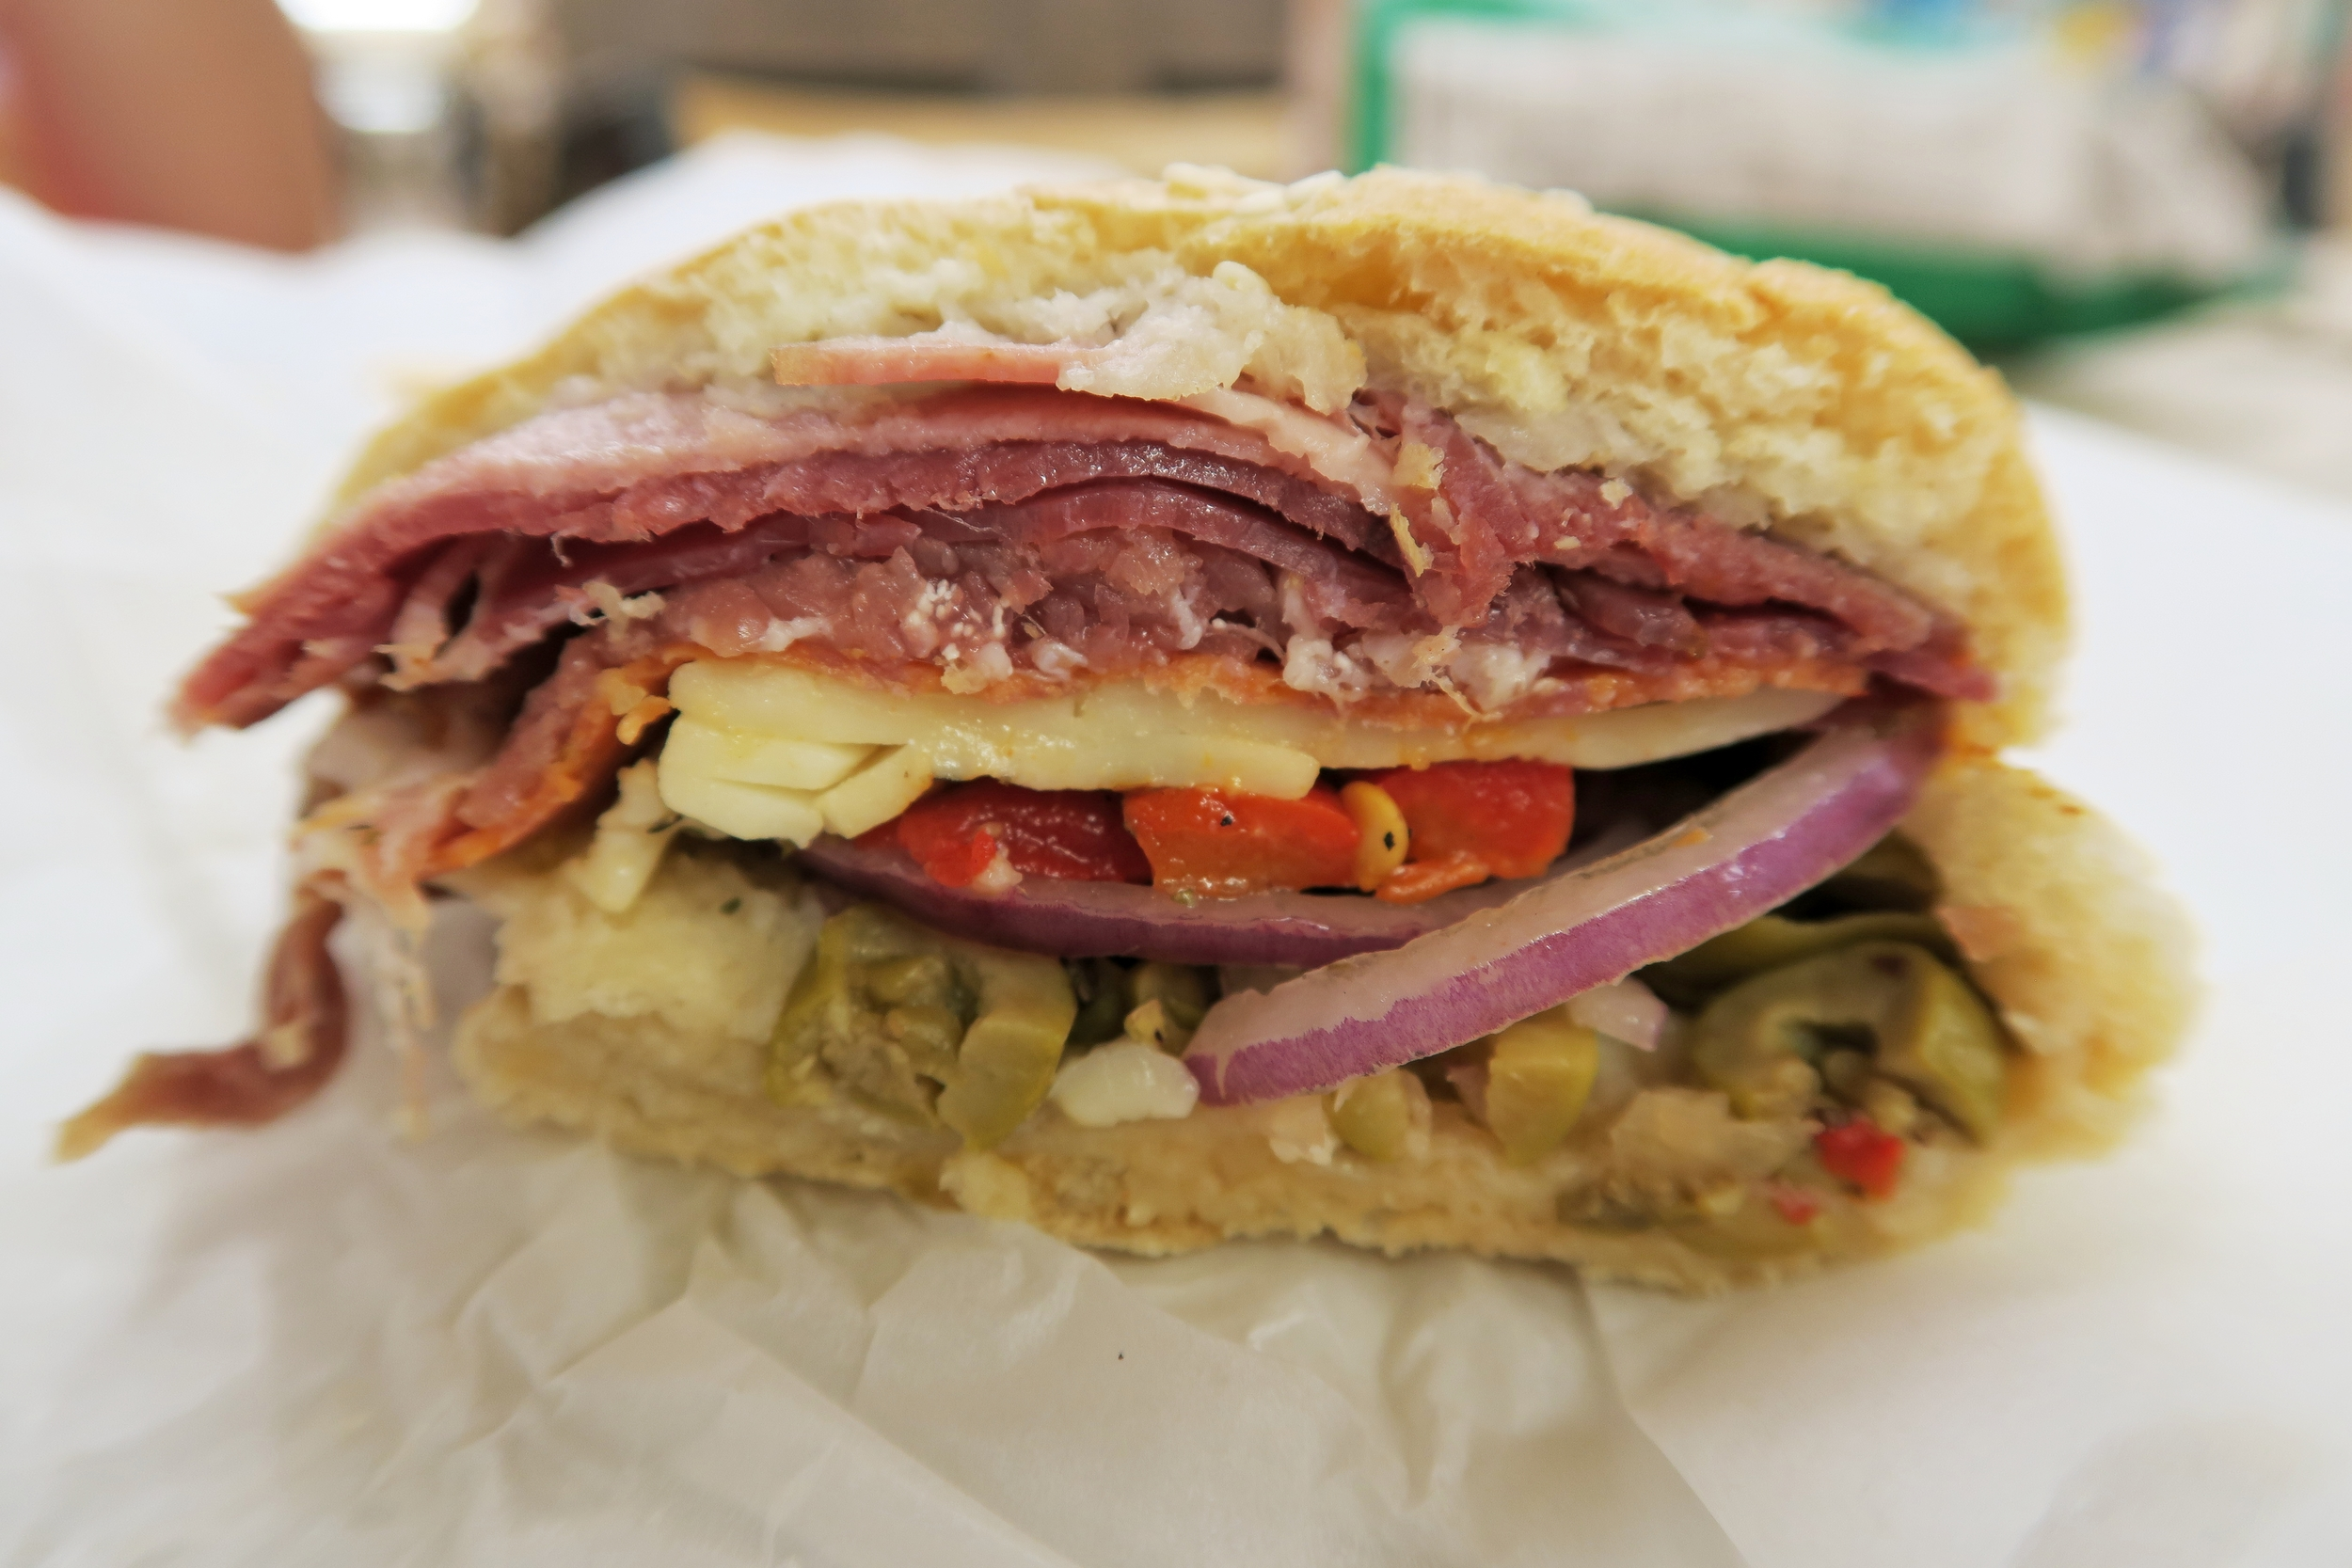 The Capo: Mortadella, Pepperoni, Prosciutto, & Hot Capicola served with oil, vinegar, italian seasoning, green olives, roasted red peppers, red onions, and mozzarella $7.79